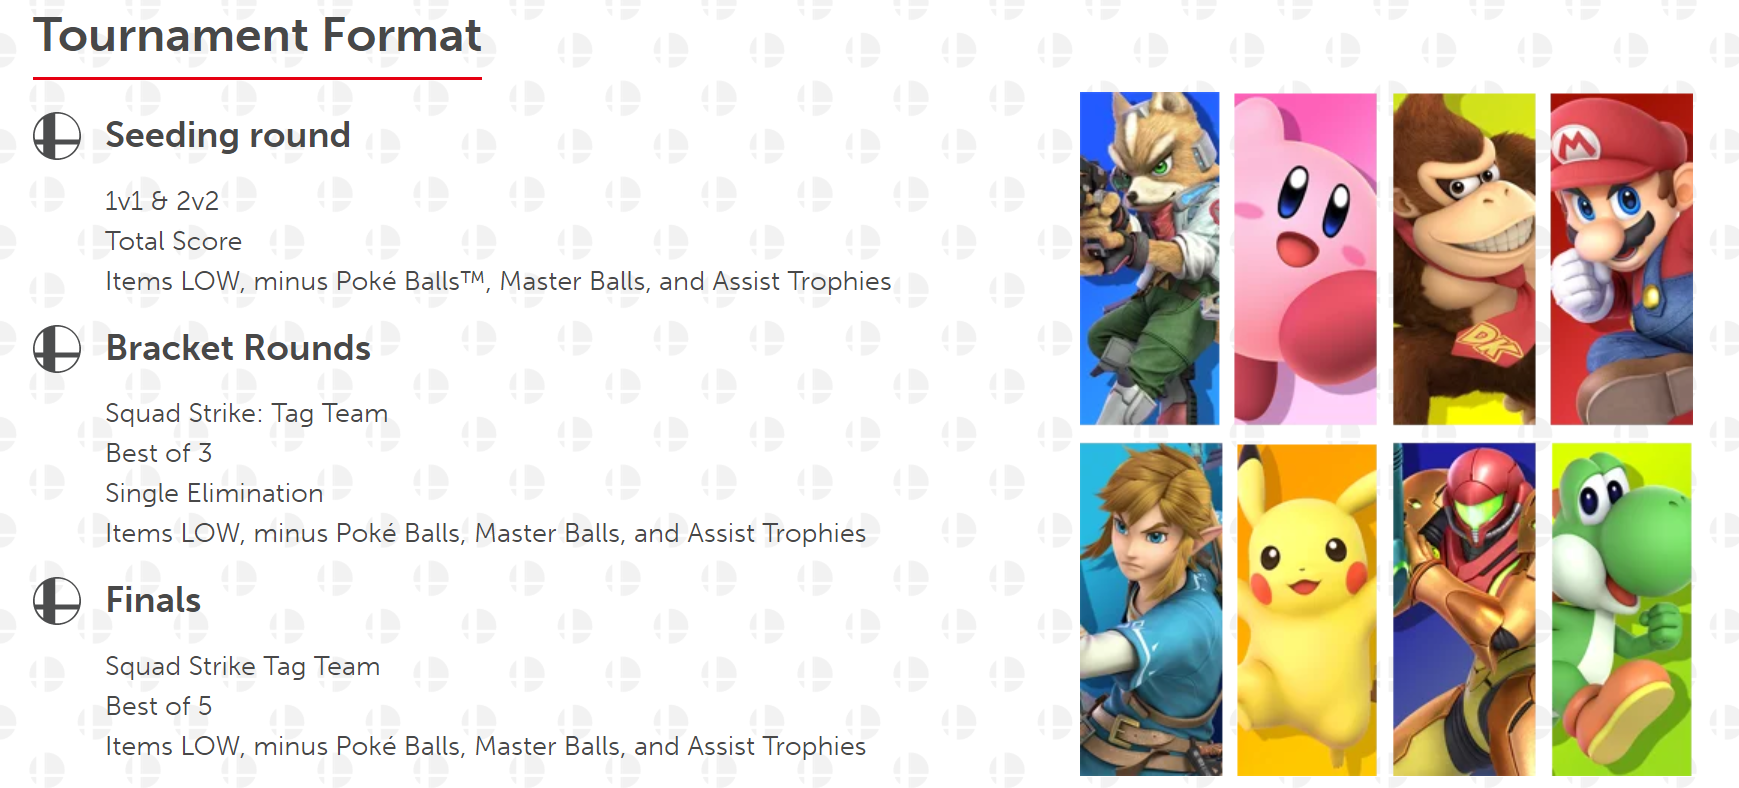 Nintendo World Championships 2 out of 2 image gallery